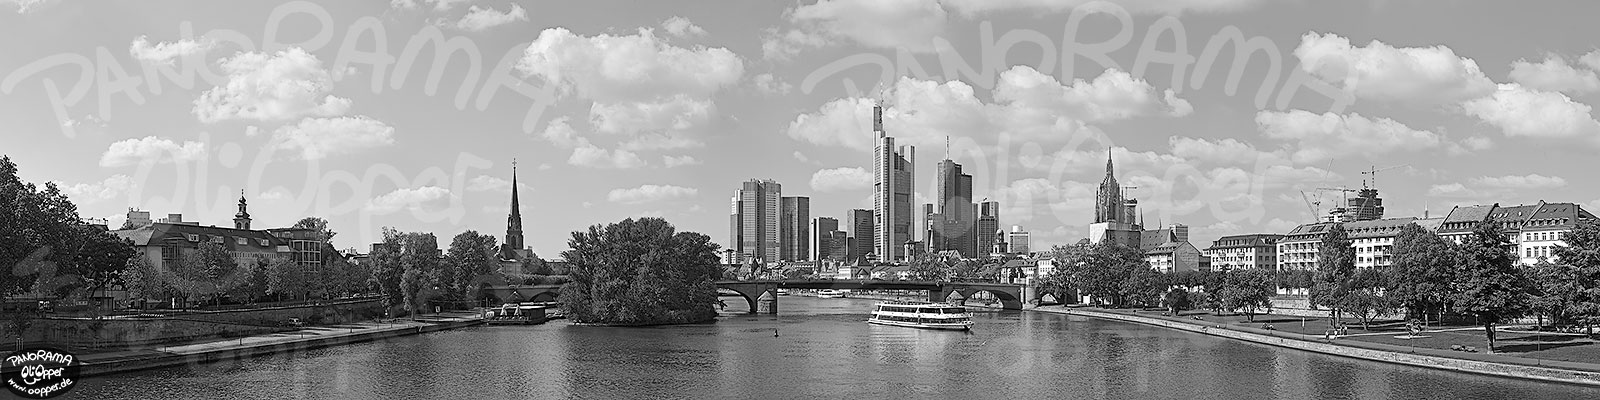 Panorama Frankfurt - Skyline am Tag - p8304 - (c) by Oliver Opper